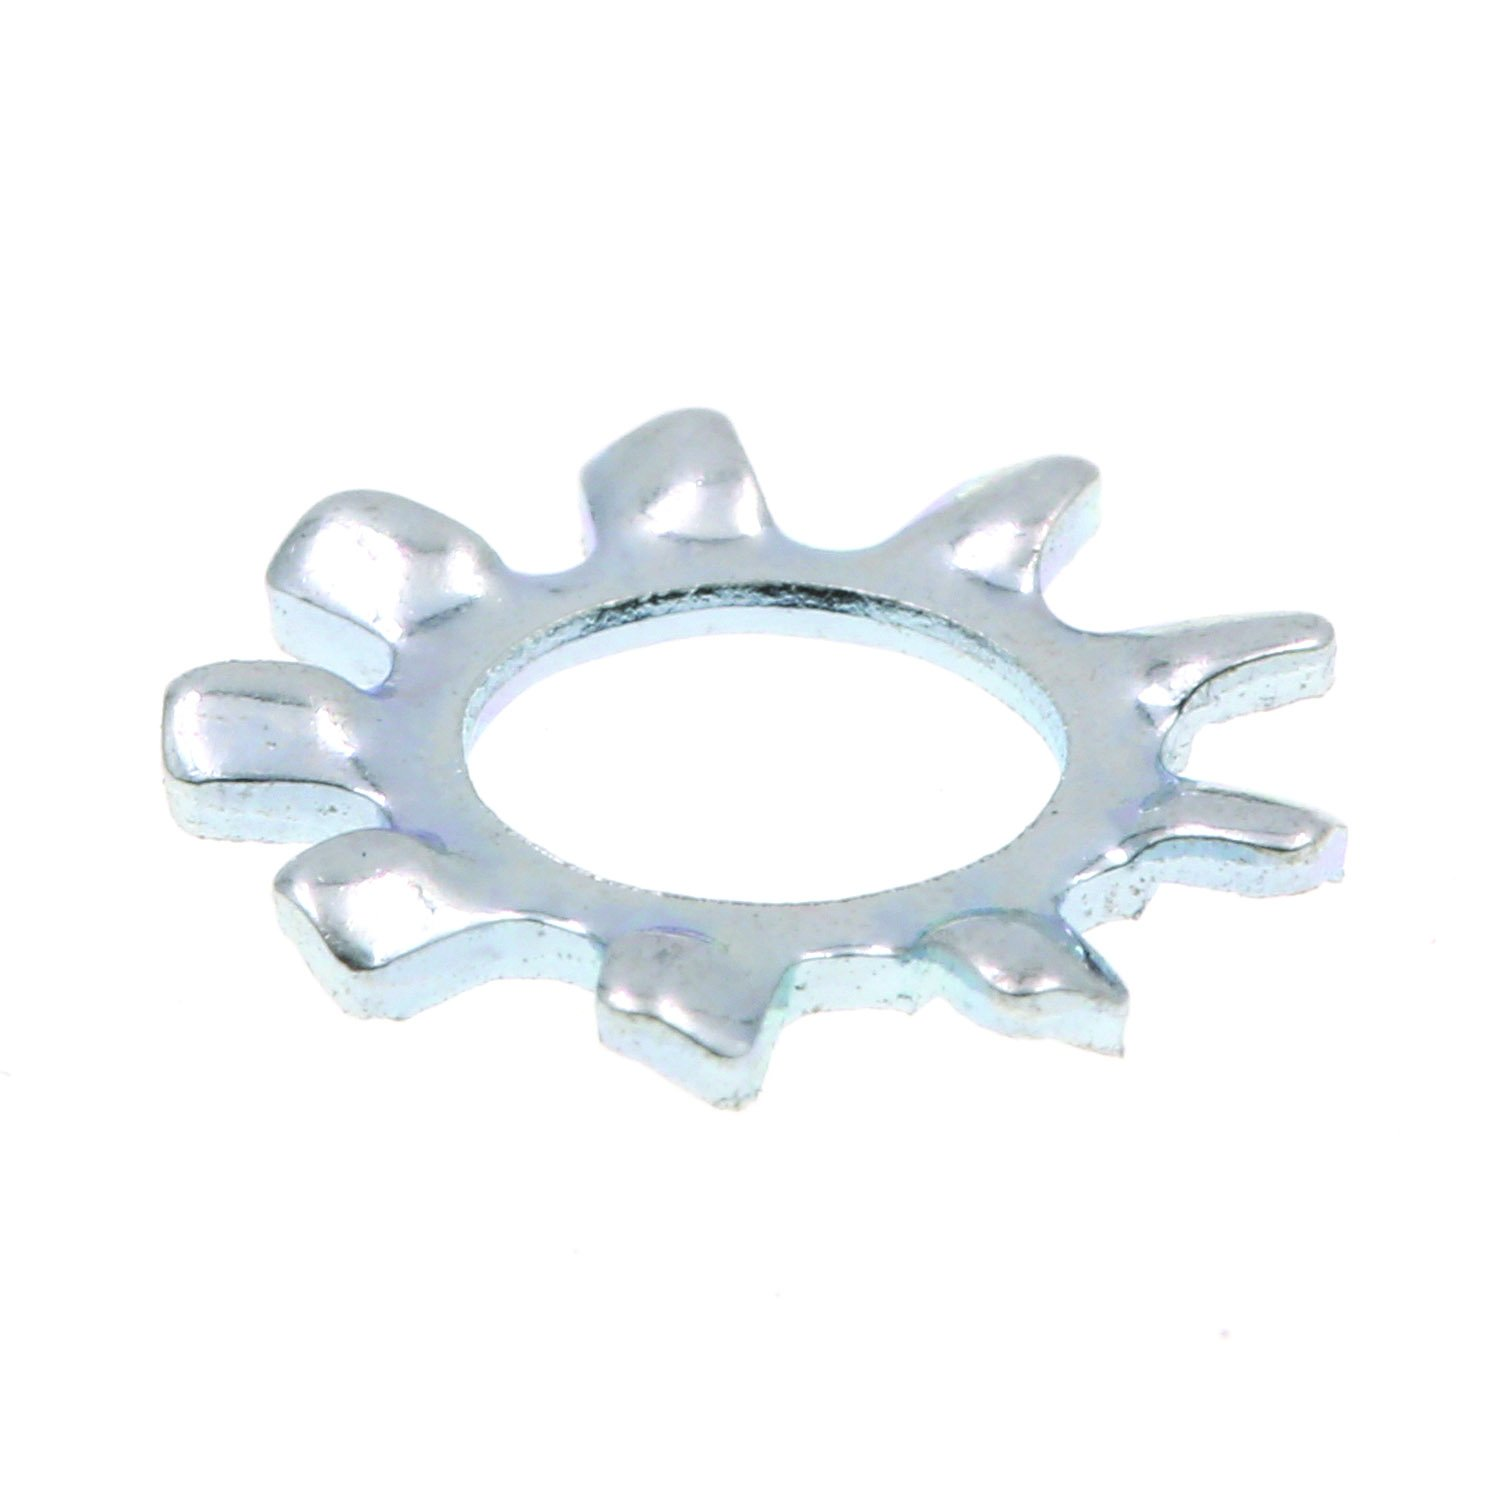 Prime Line 9083124 Lock Washers External Tooth #10 Zinc Plated Steel 100 Pack